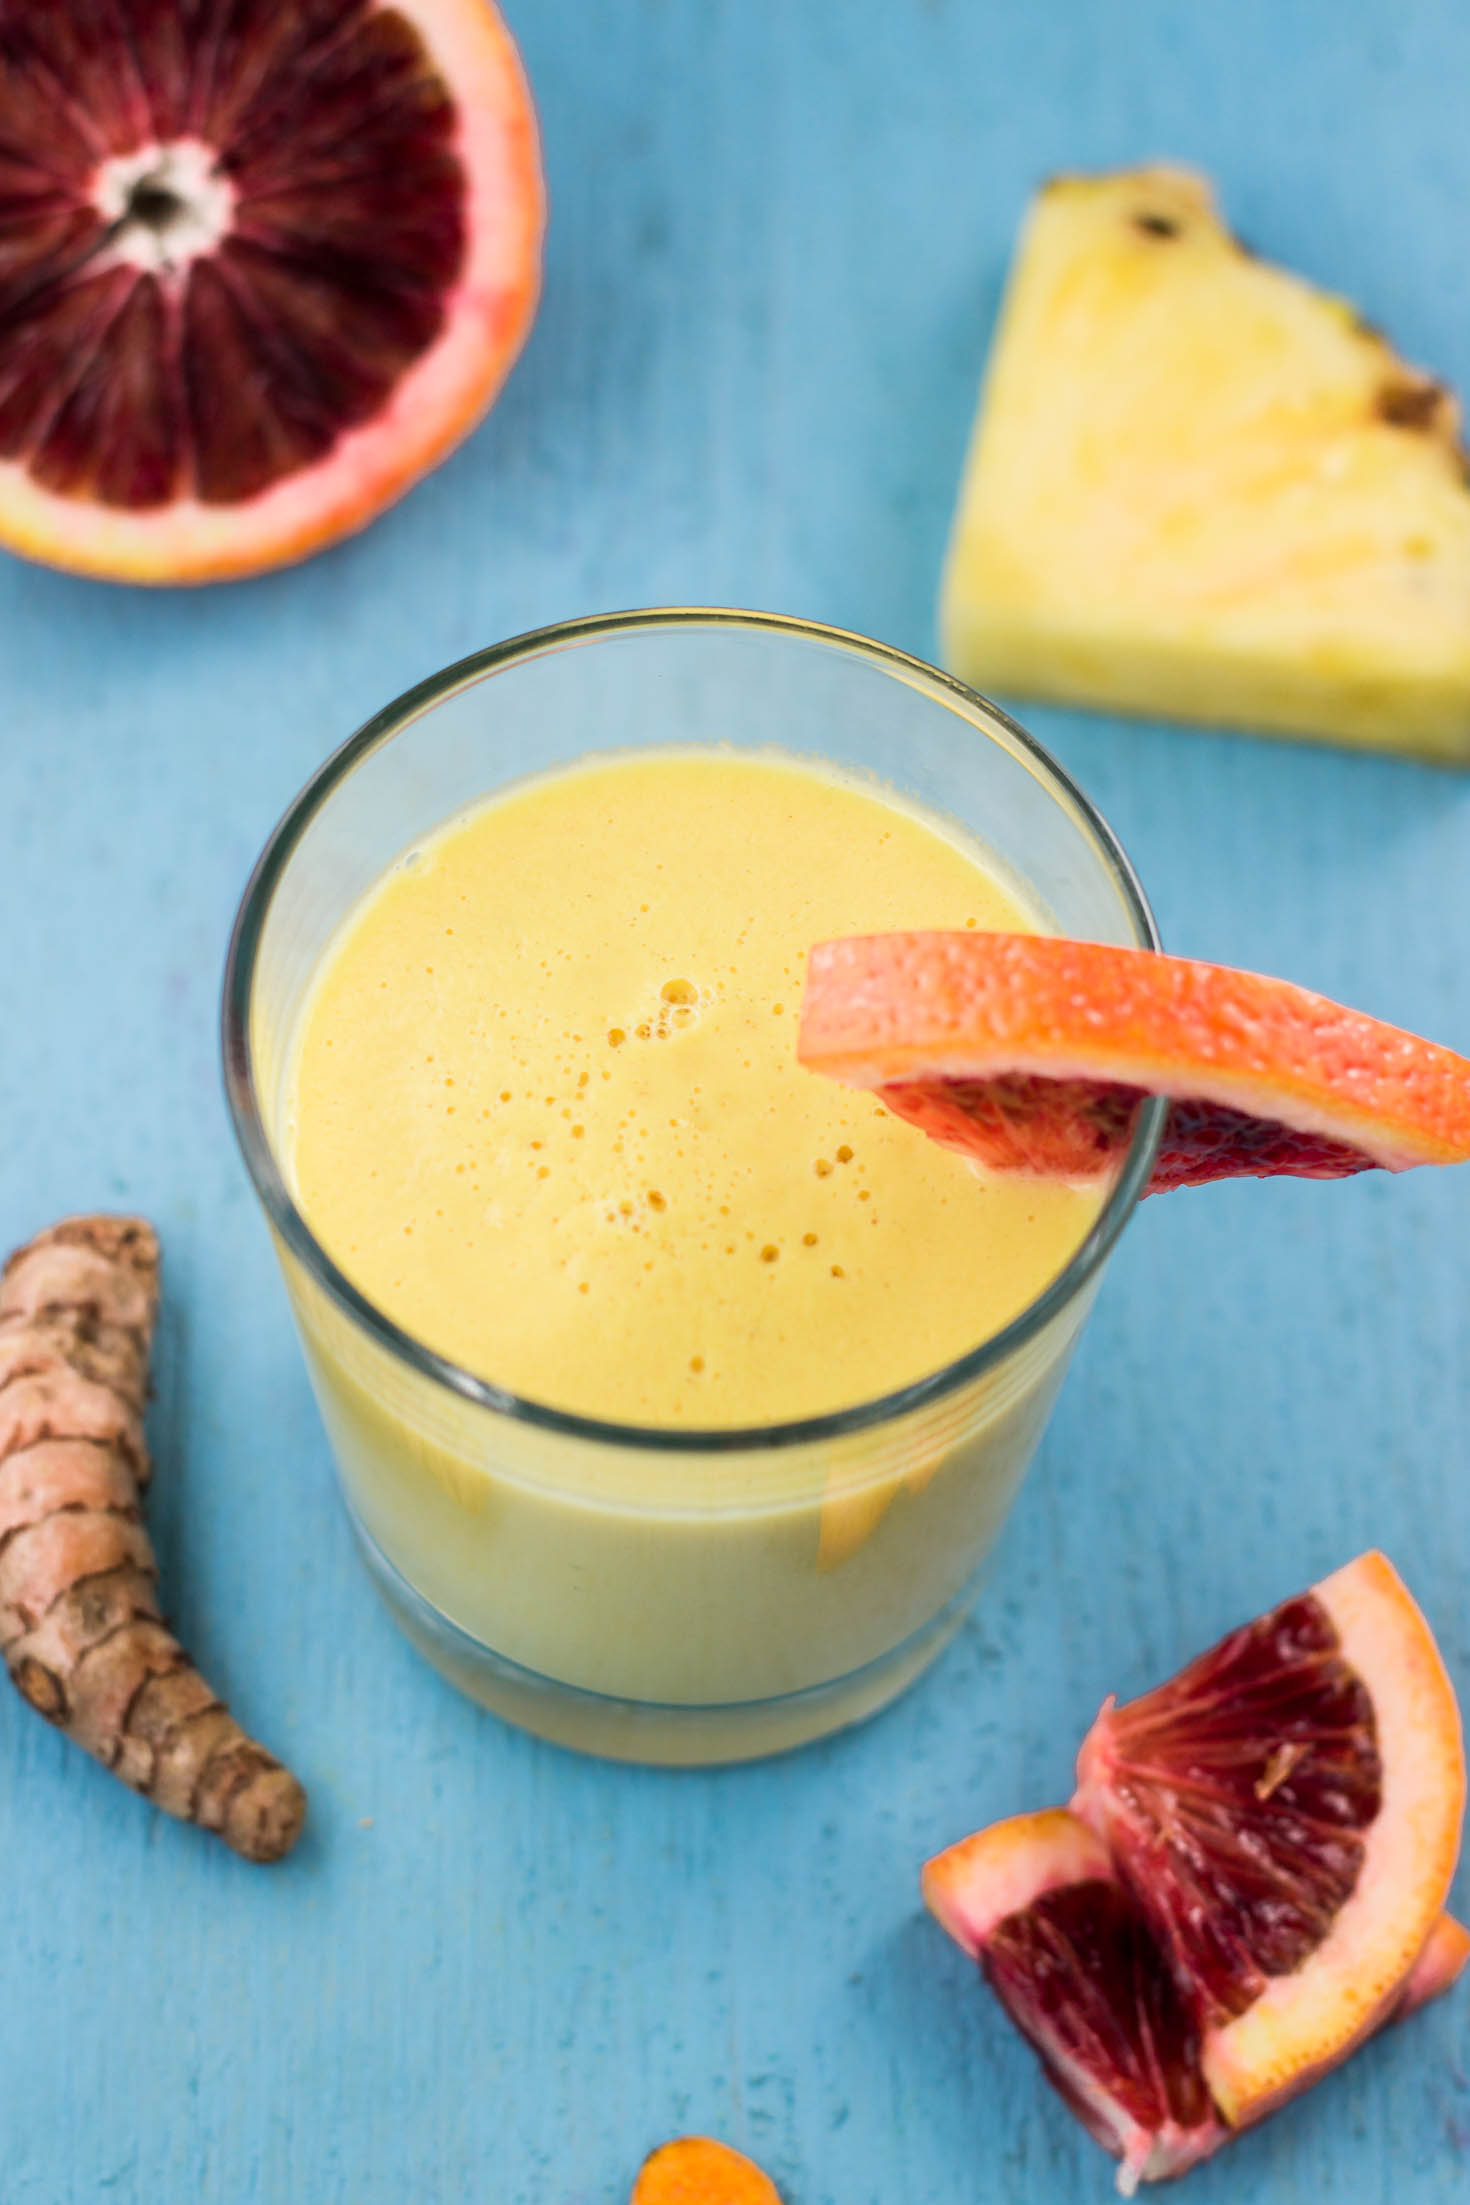 Cardamom Turmeric Spiced Golden Tropical Smoothie-topview in a glass with blood orange garnish